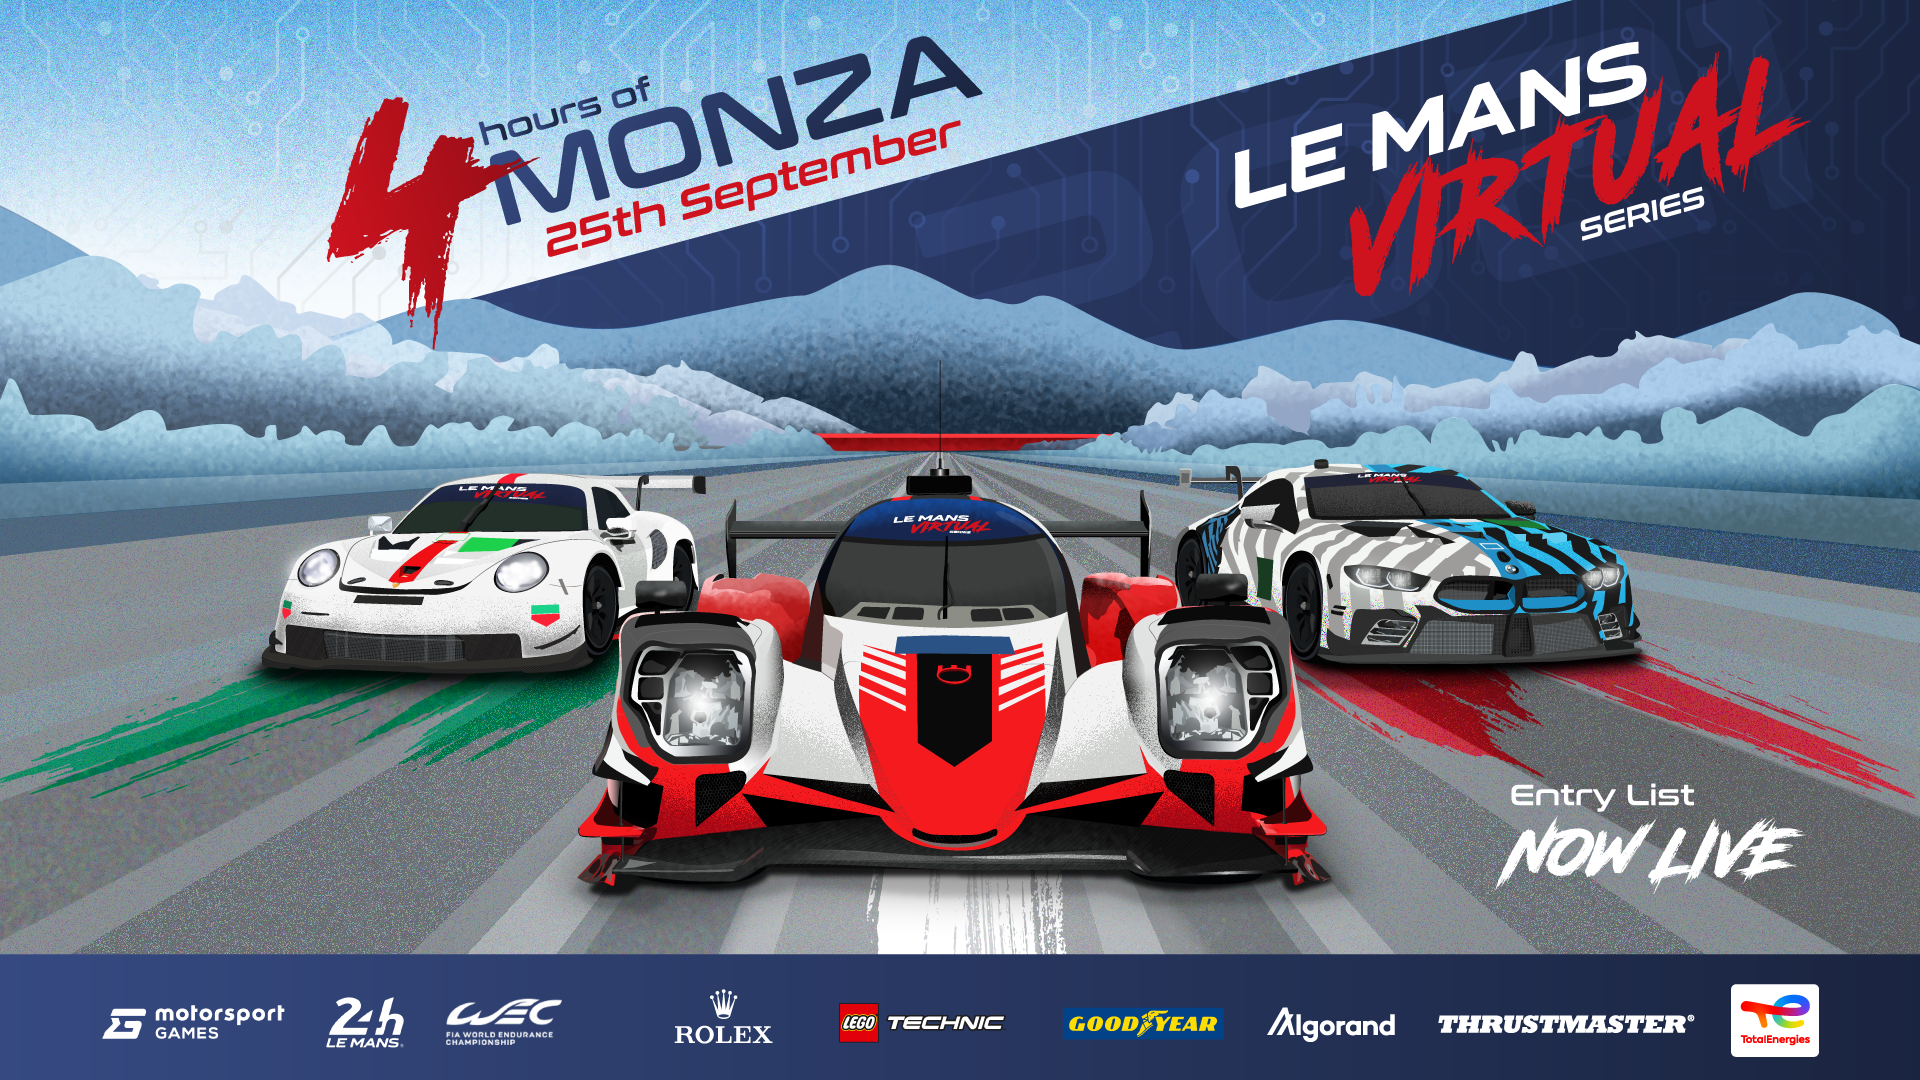 Driver line-up for first Le Mans Virtual Series race revealed